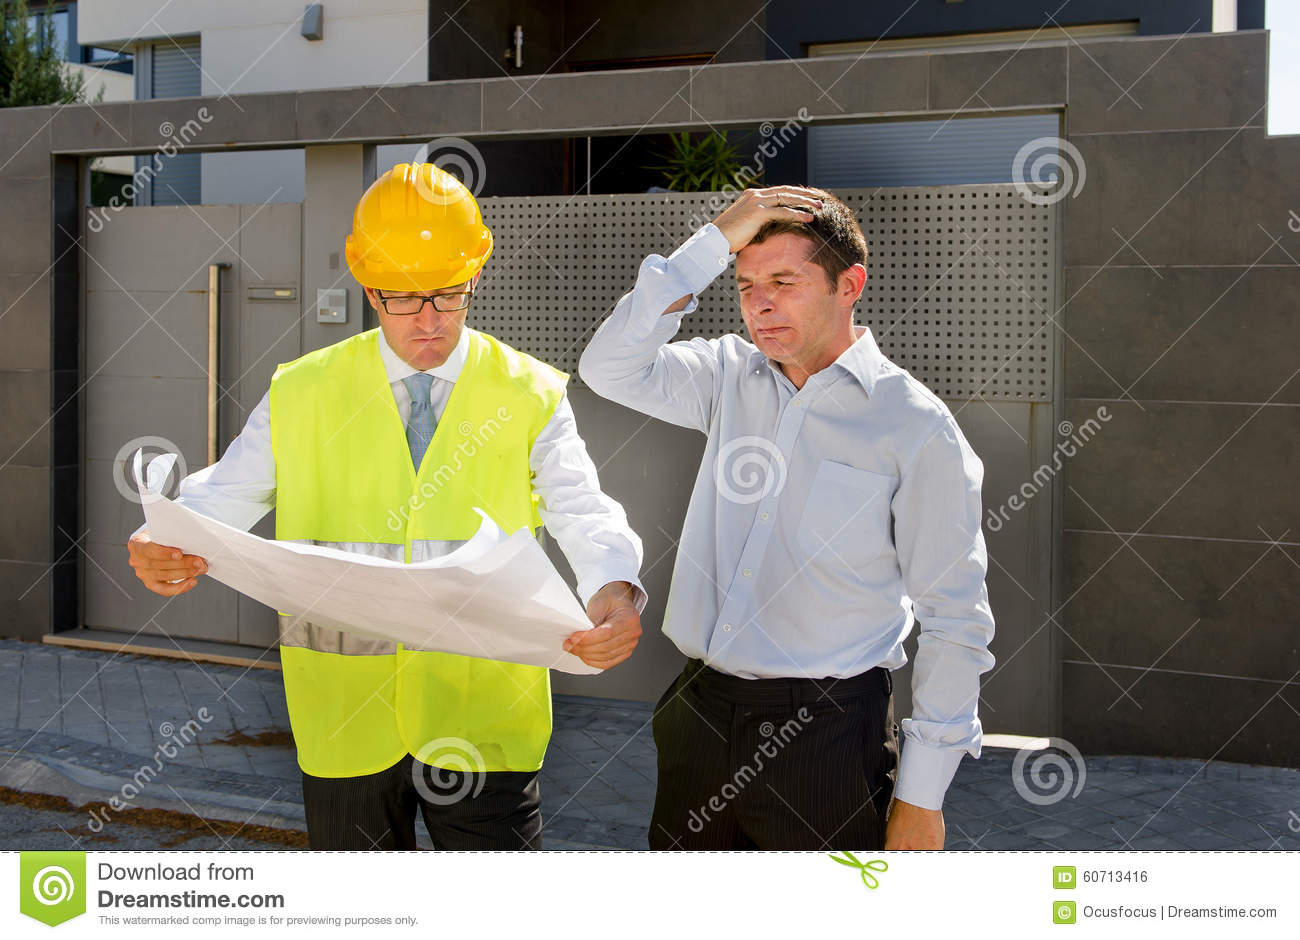 desperate customer in stress and constructor foreman worker desperate customer in stress and constructor foreman worker helmet and vest arguing outdoors on new